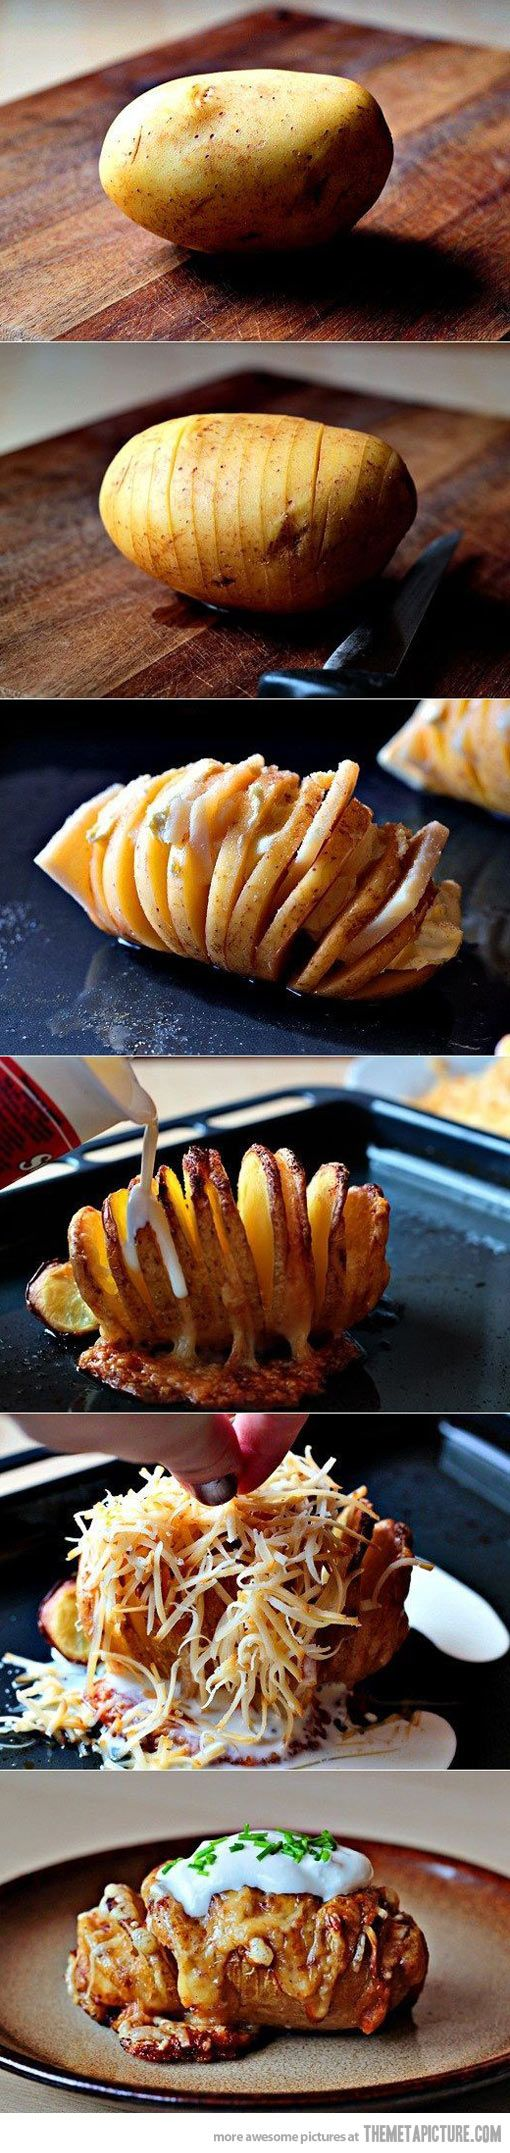 Crispy cheese potato